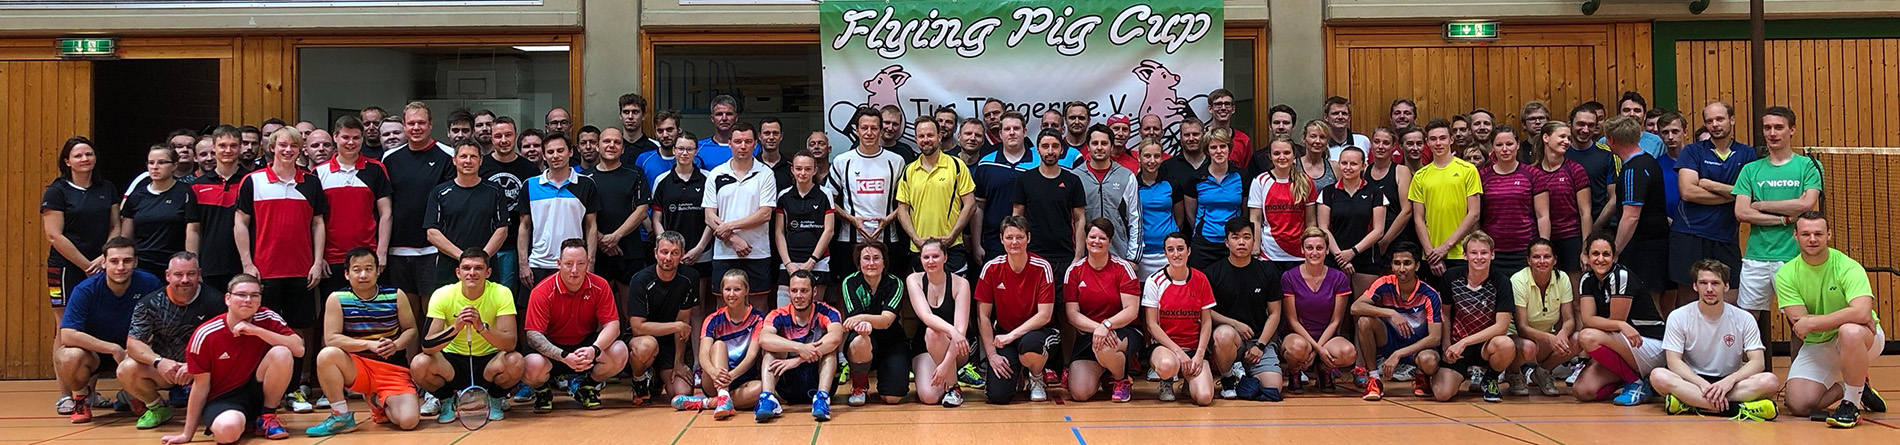 Rückblick 21. Flying Pig Cup 2018